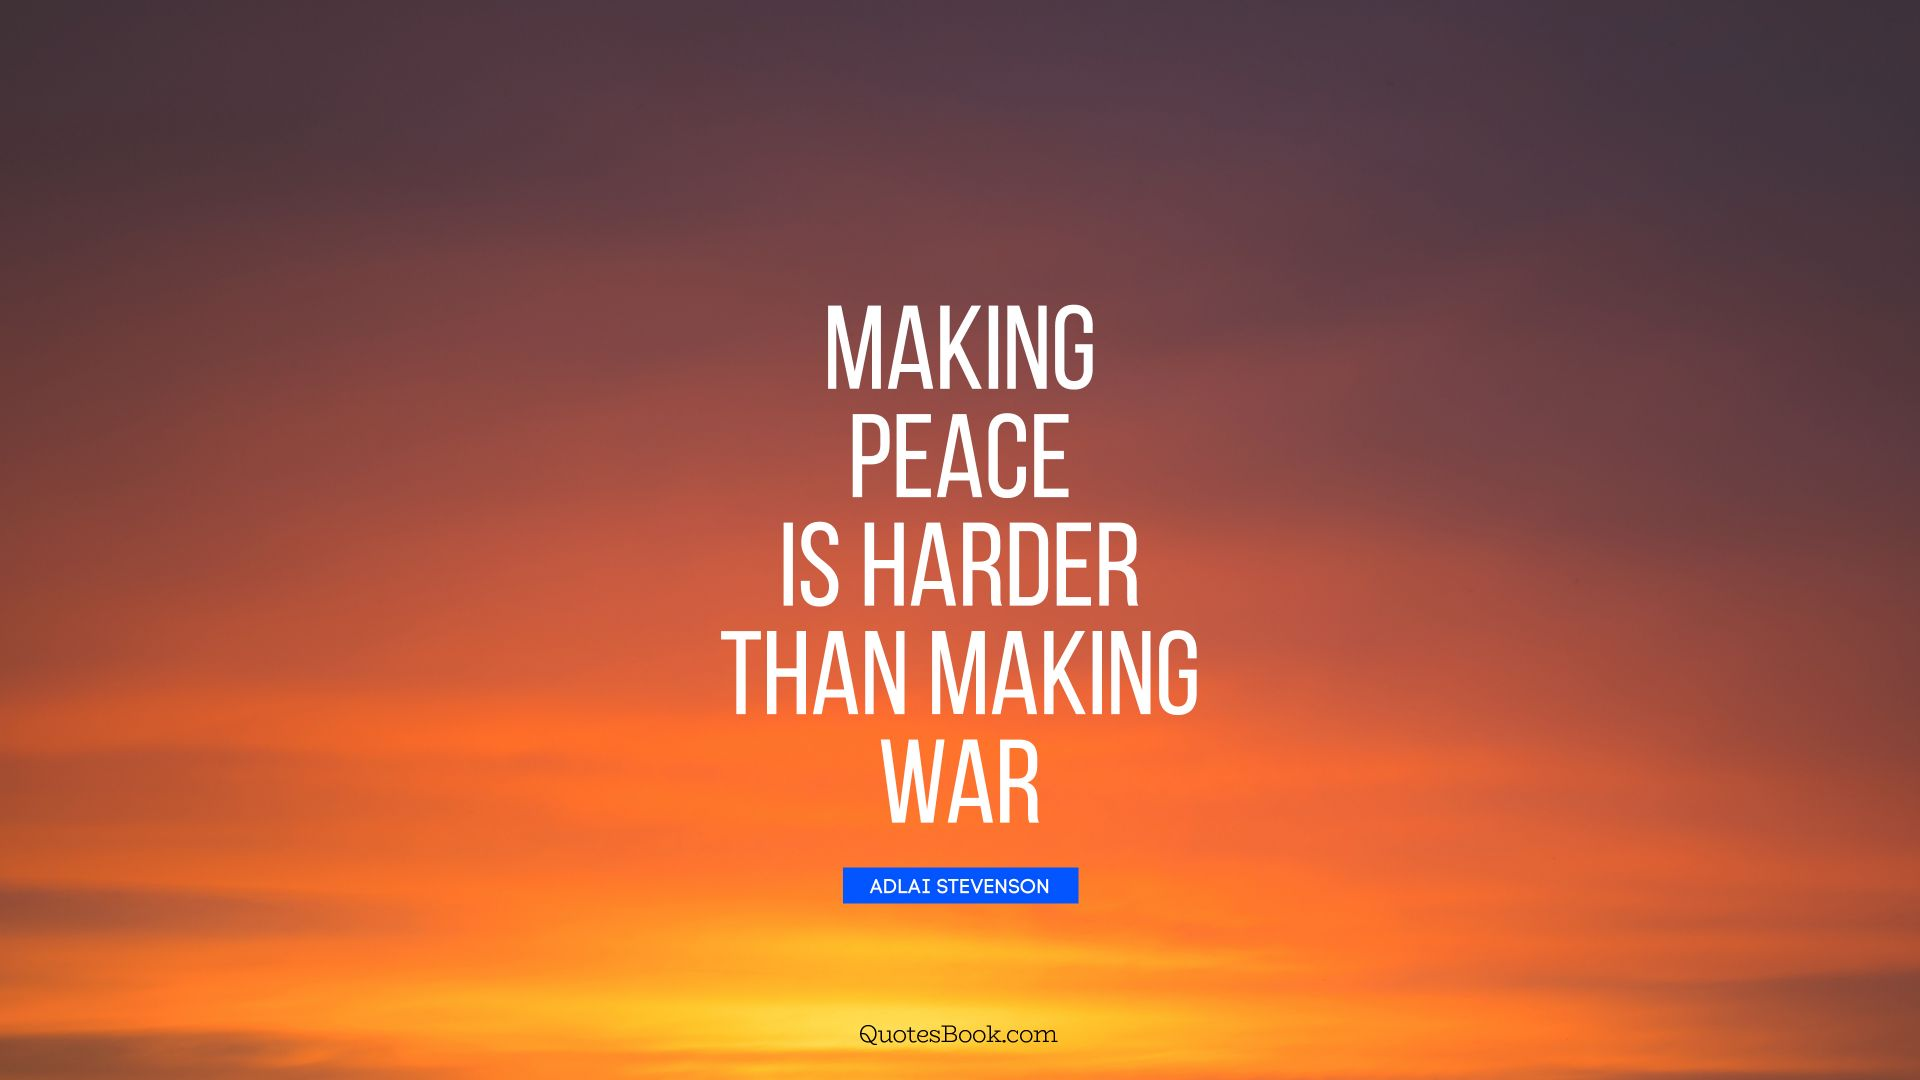 Making peace is harder than making war. - Quote by Adlai Stevenson